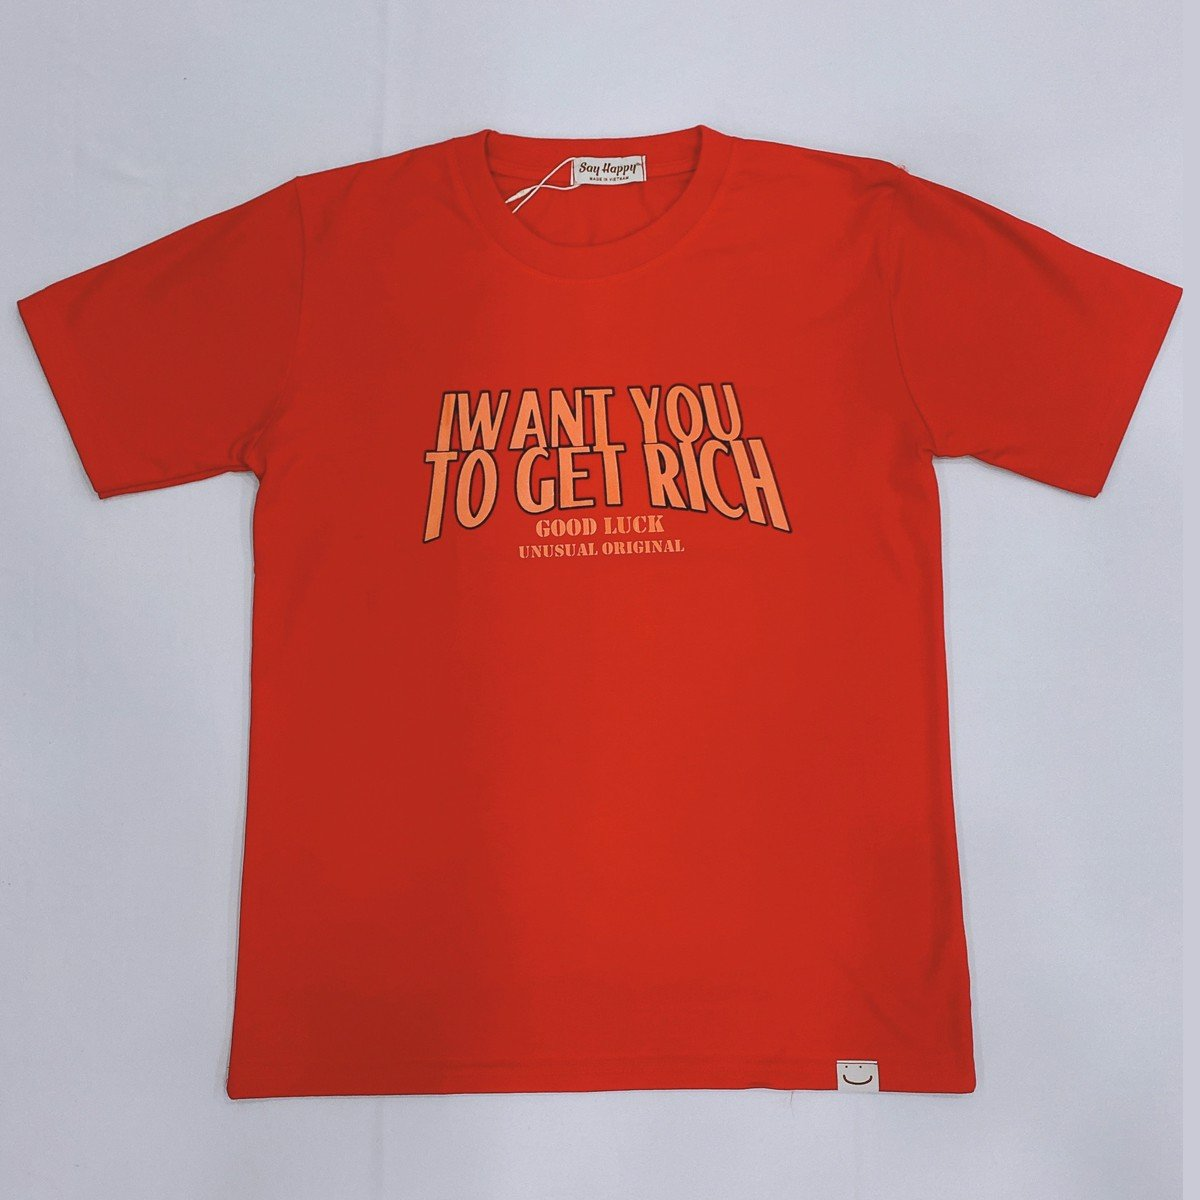 Say Happy Tshirt - Áo thun đỏ form medium in hình